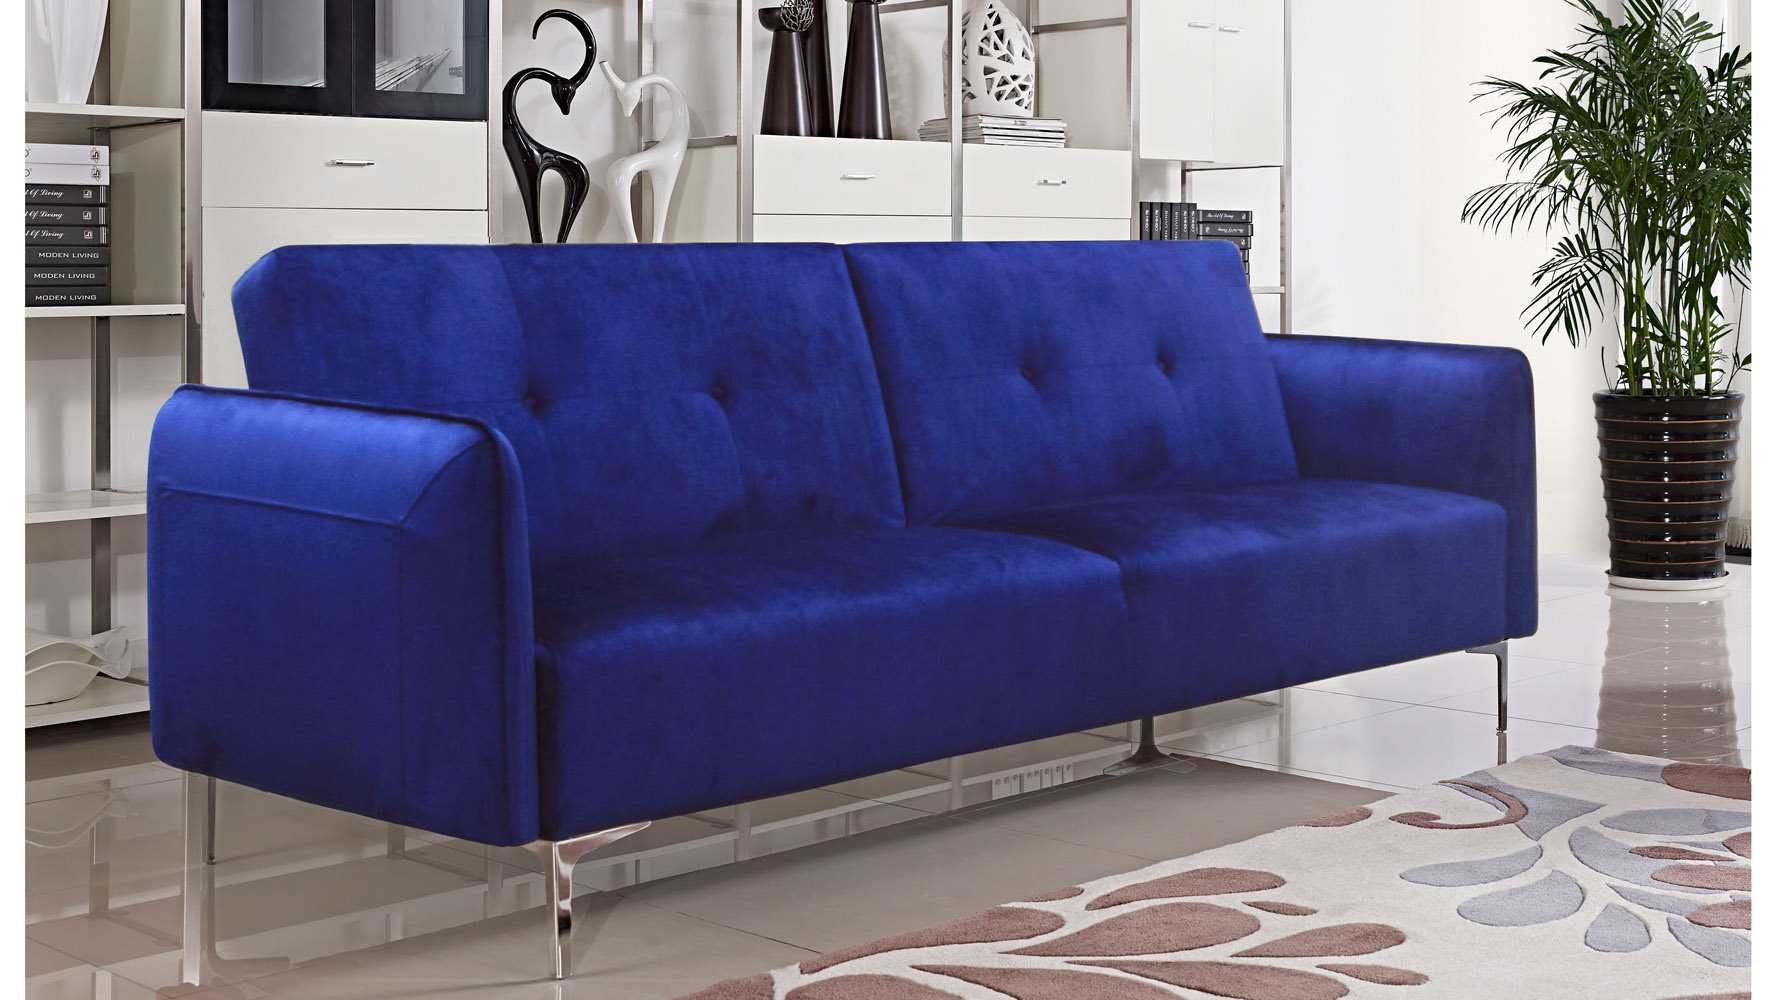 Arie Tufted Fabric Sofa Bed With Chrome Legs Cobalt Blue Zuri